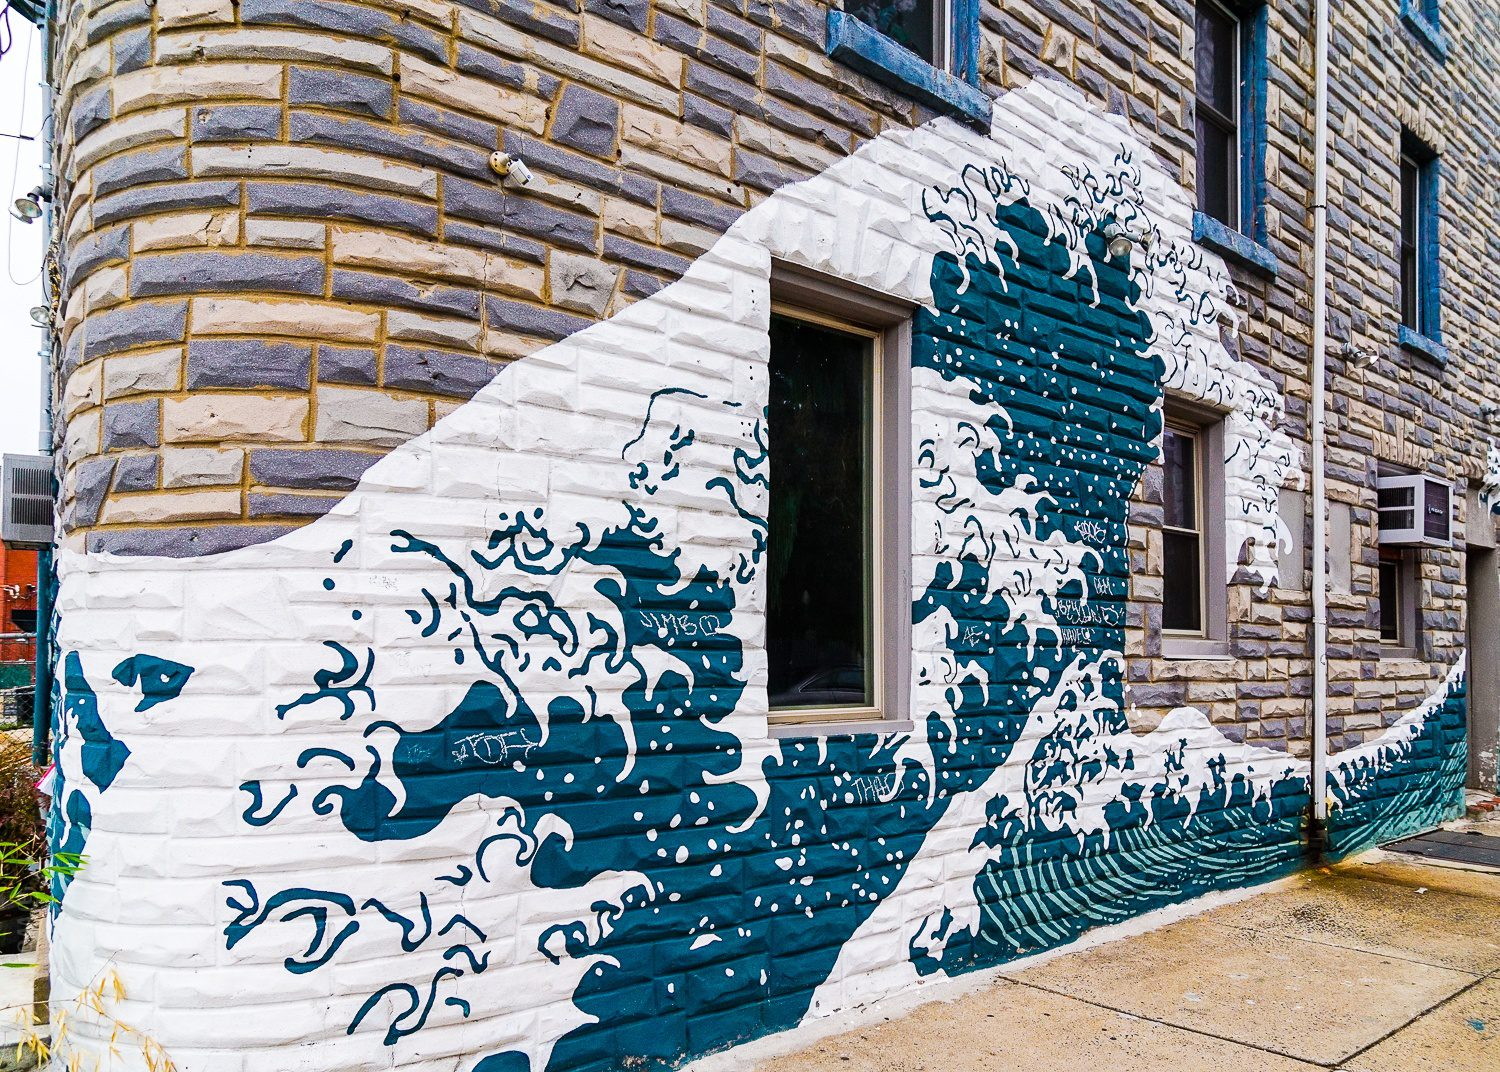 This building's wave wall echoes the watery theme.